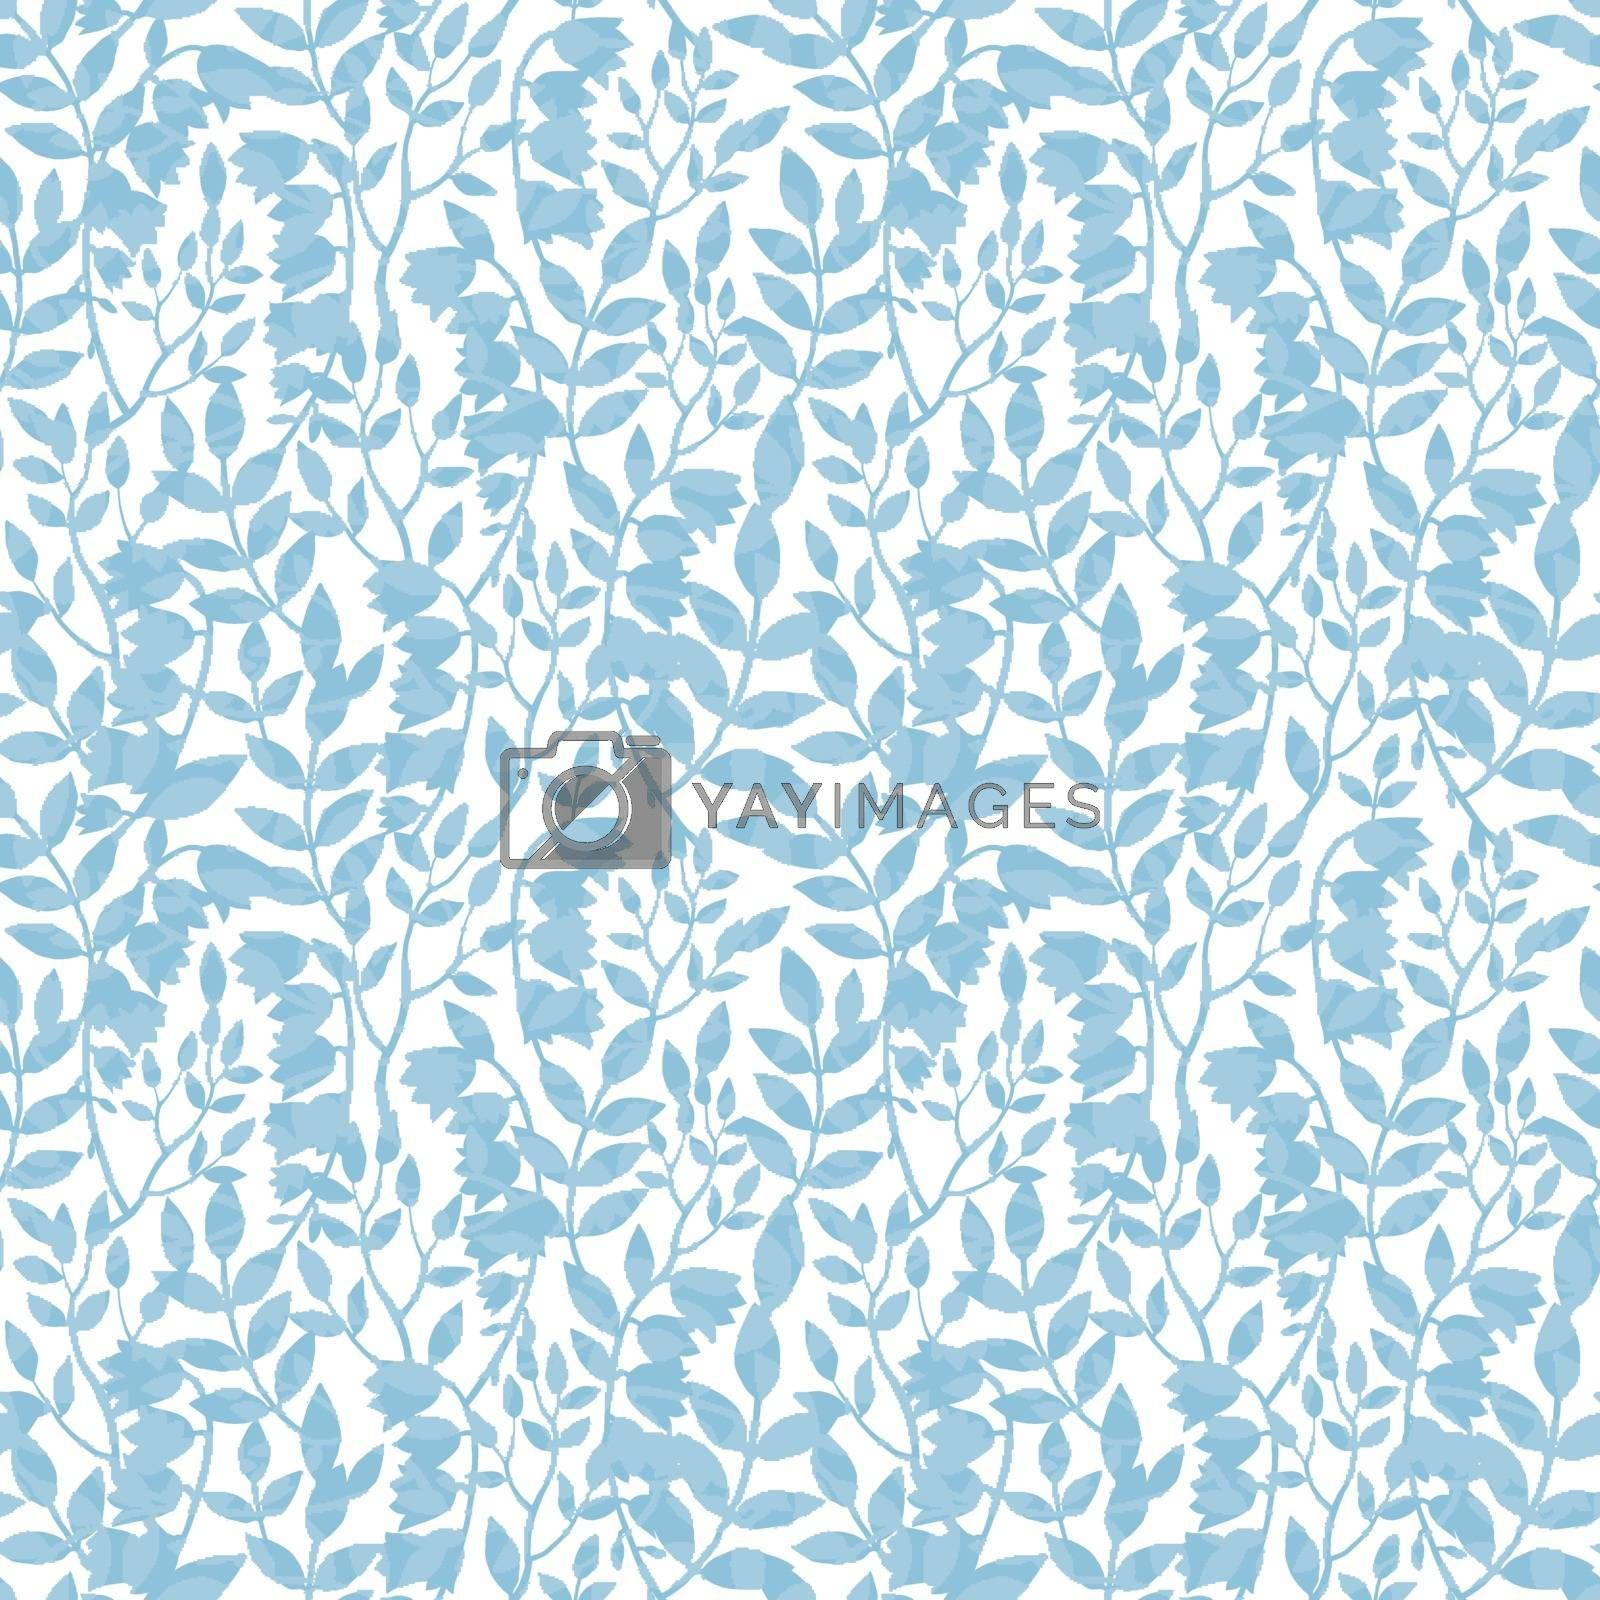 Royalty free image of Vector Blue Floral Shadows Seamless Pattern by Oksancia